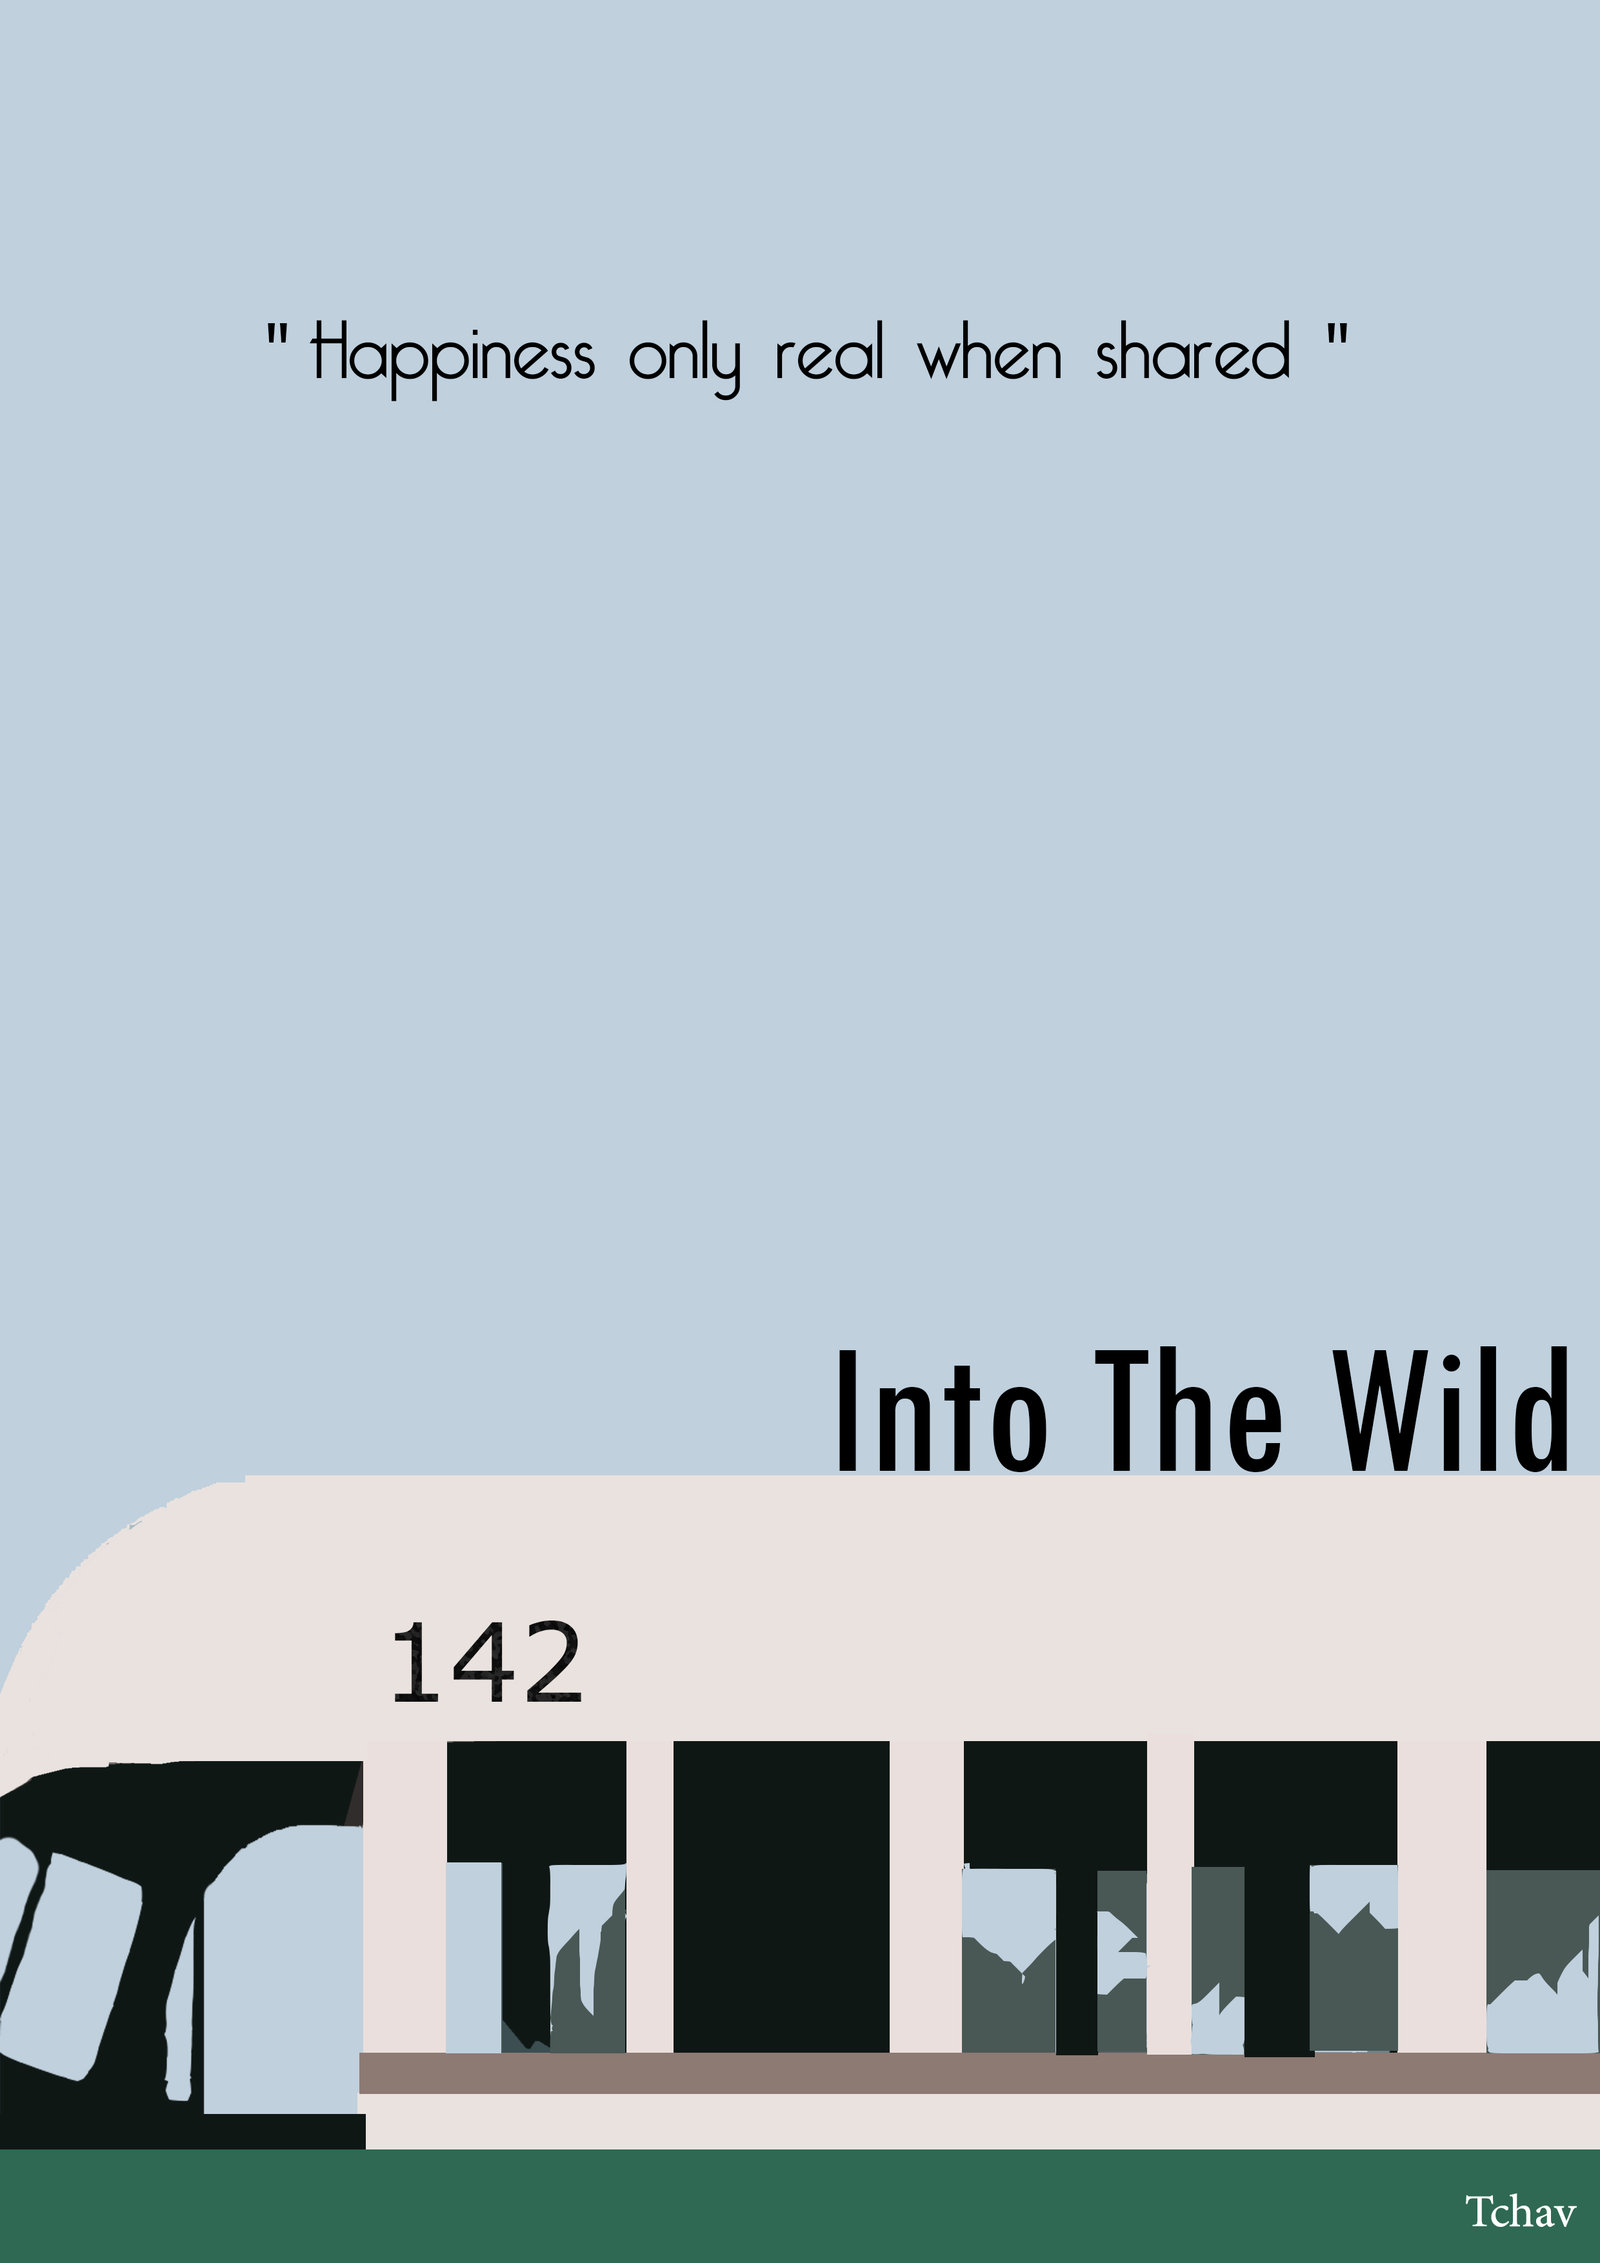 into_the_wild_minimalist_poster_by_tchav-d5znj7q